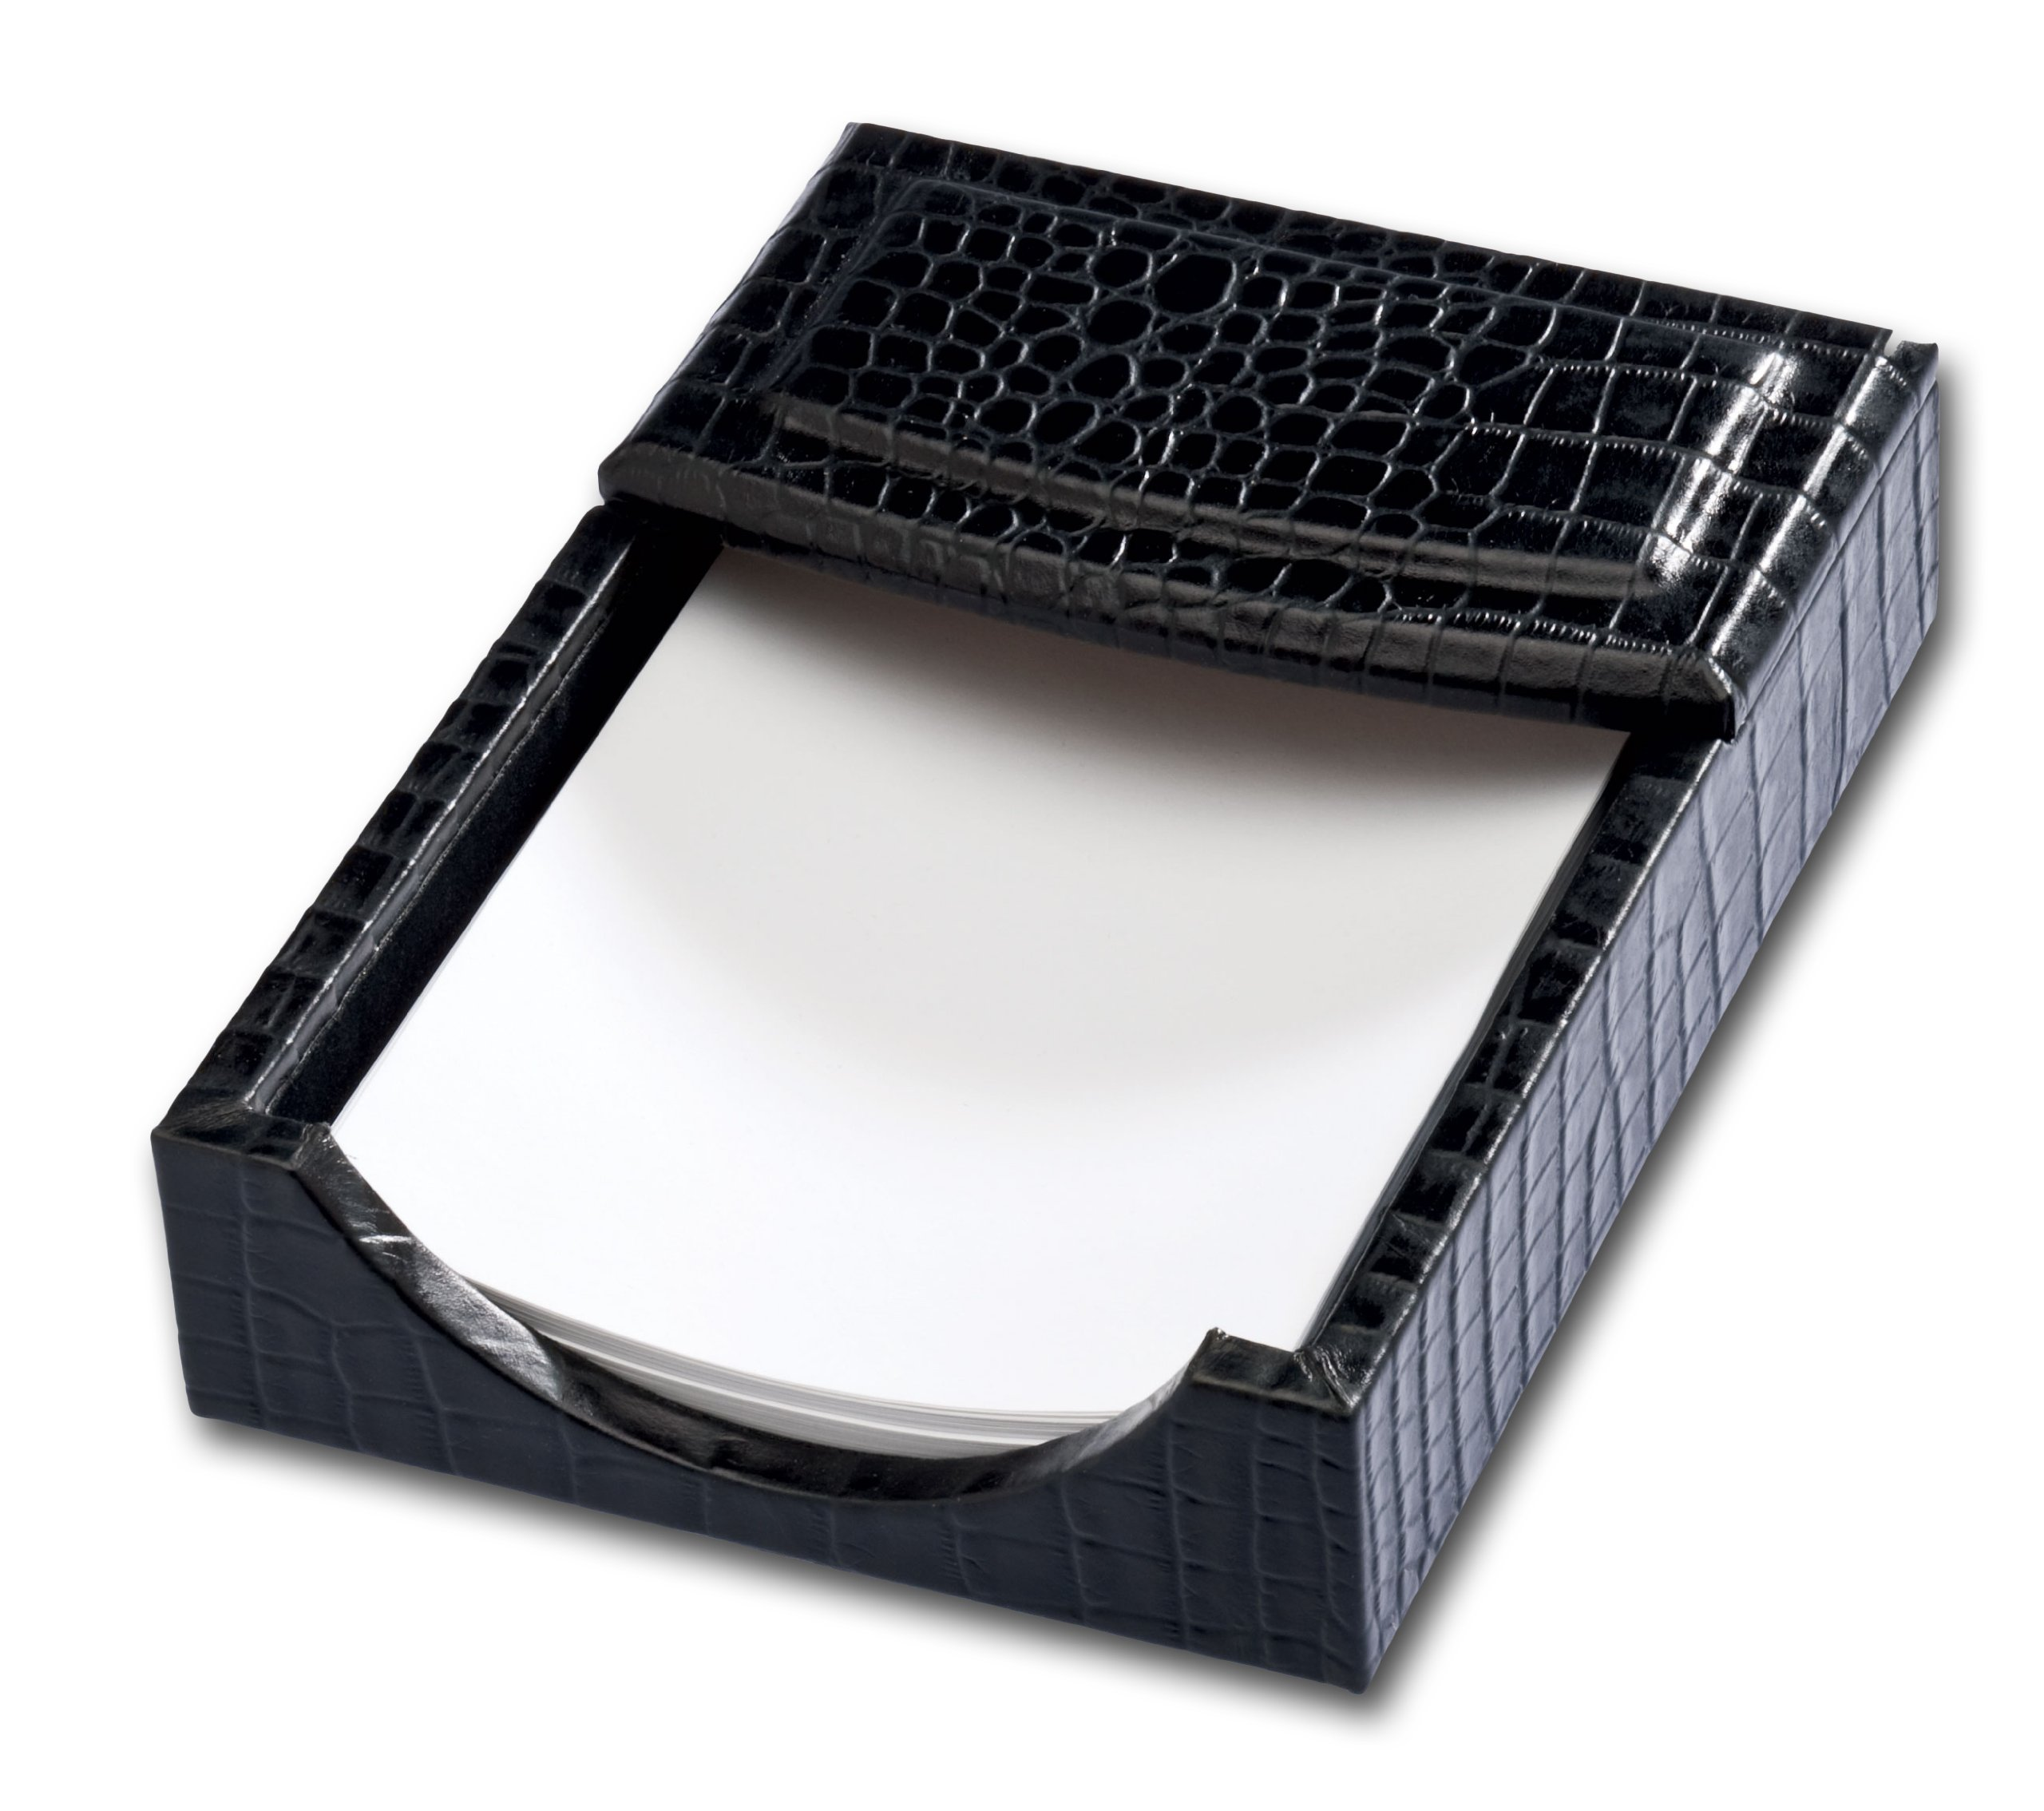 Dacasso Black Crocodile Embossed Leather Memo Holder, 4-Inch by 6-Inch by Dacasso